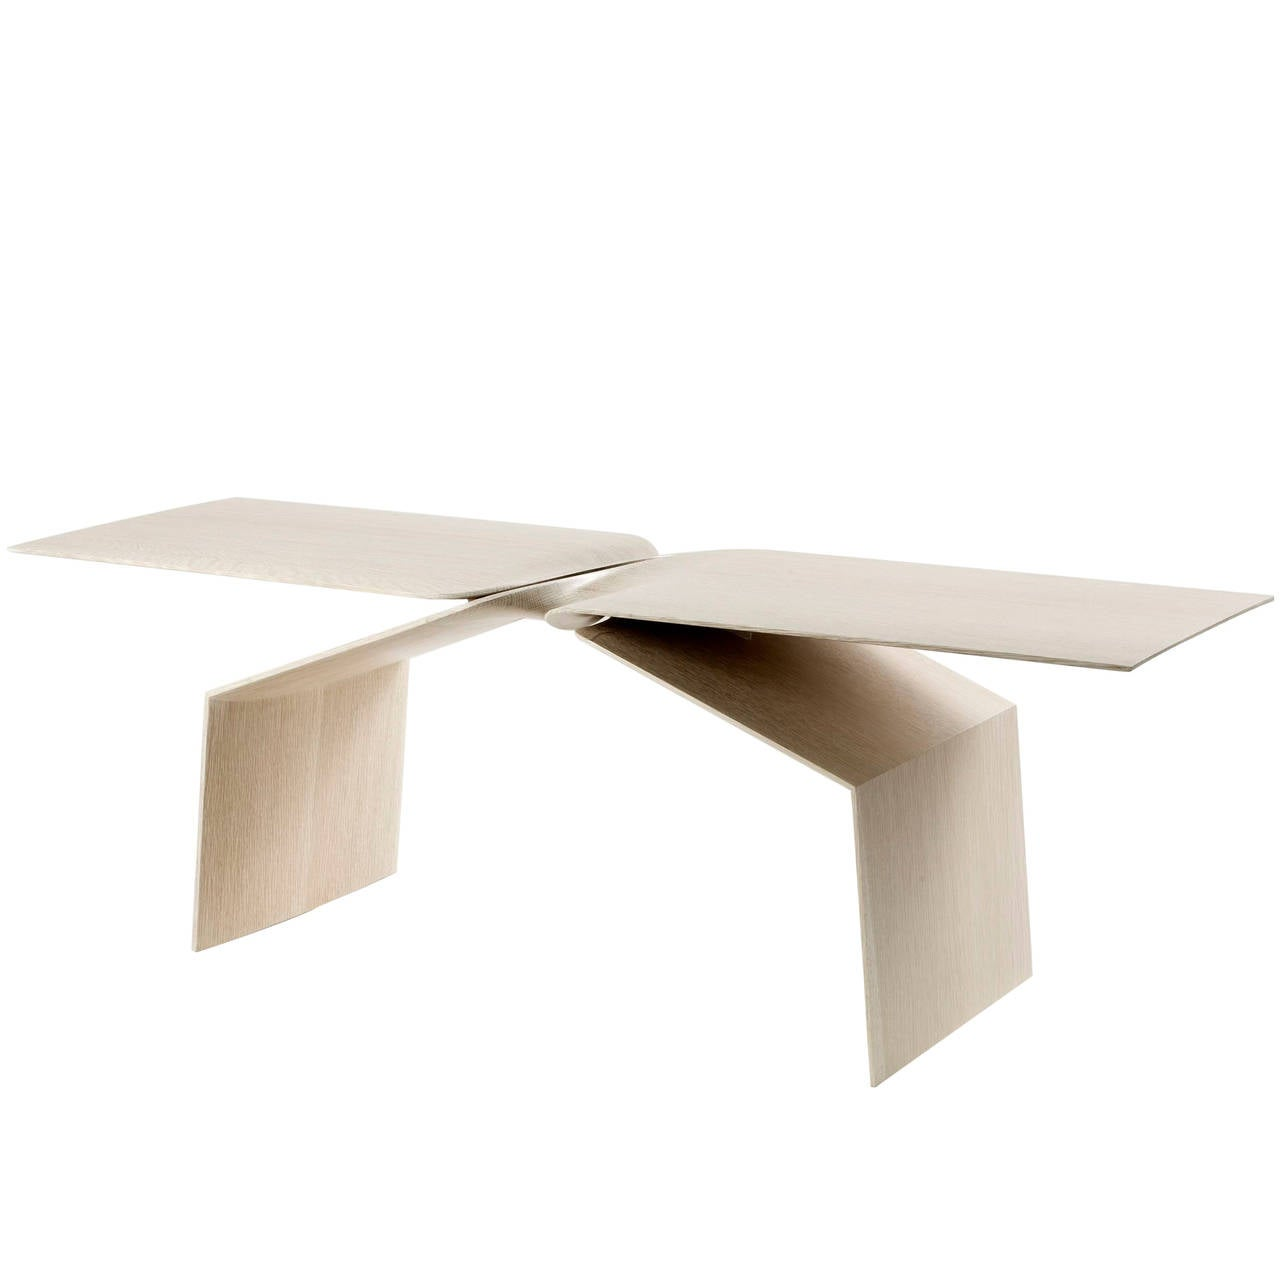 Carol egan sculptural hand carved limed oak coffee table usa carol egan sculptural hand carved limed oak coffee table usa 2015 1 geotapseo Image collections